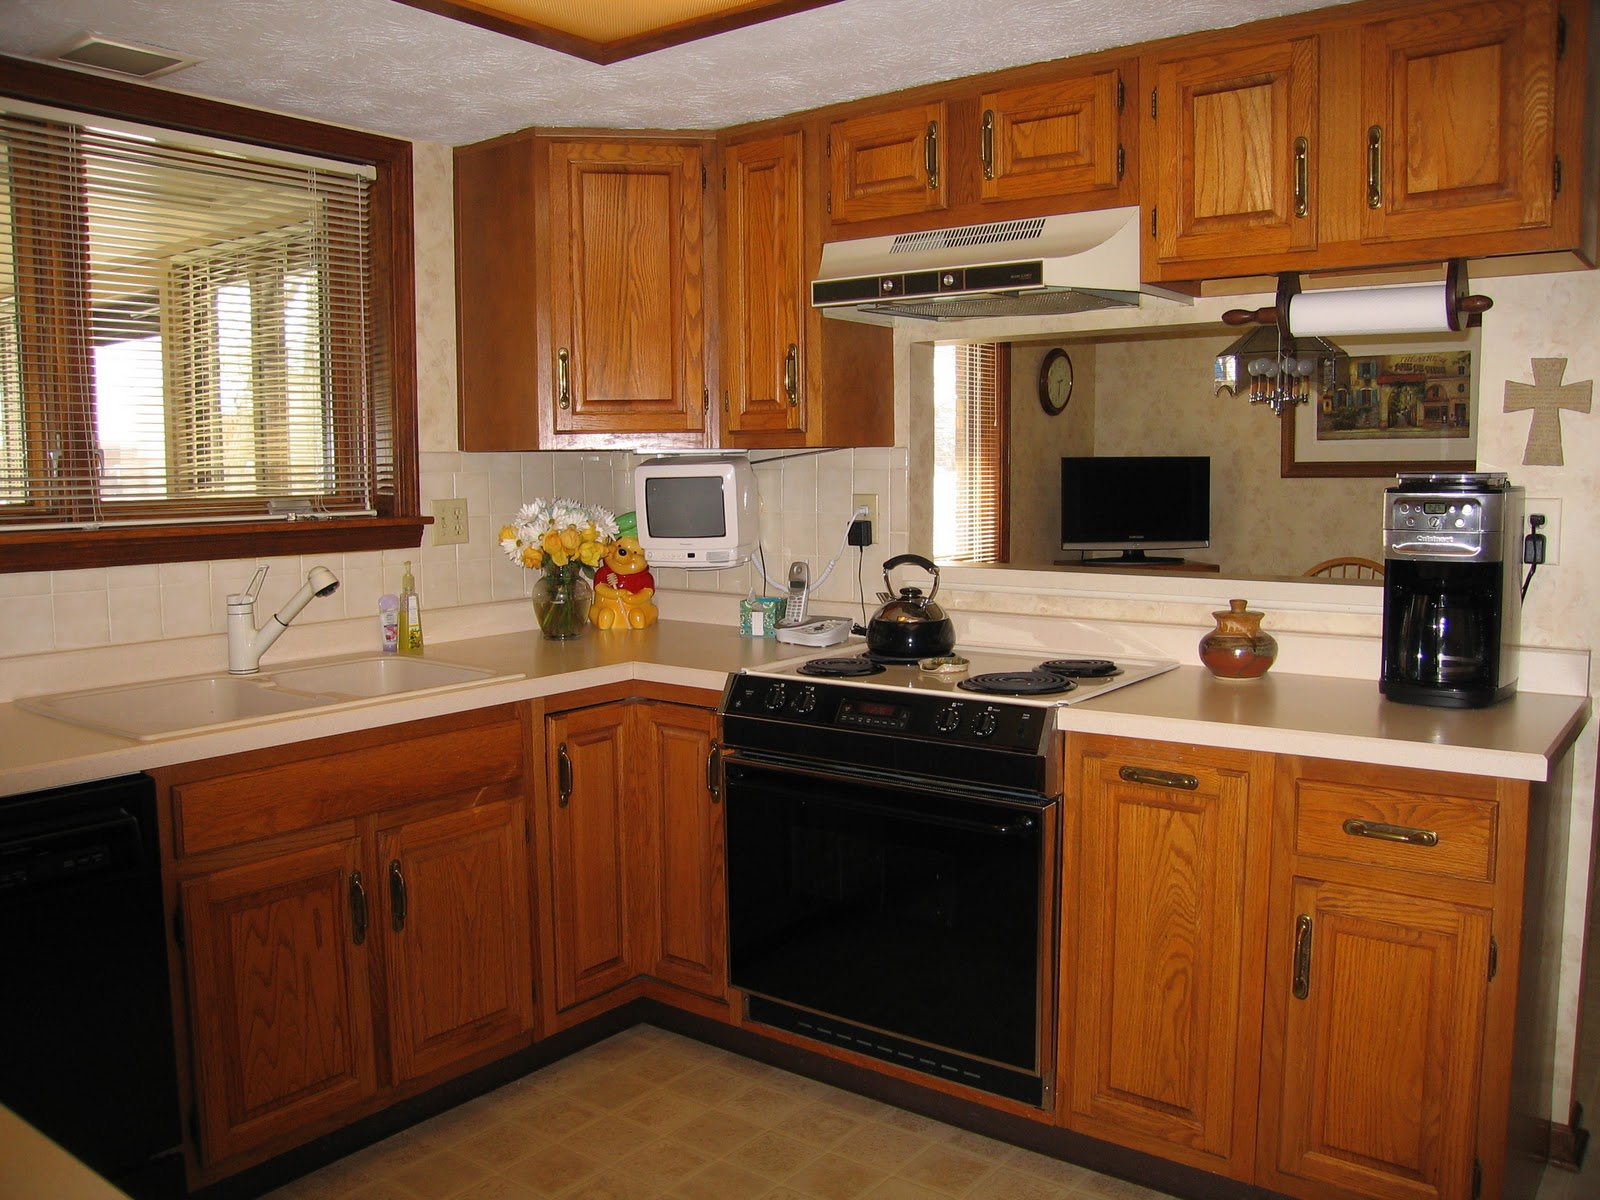 Kitchen Designs With Oak Cabinets And White Appliances Meet The Parents And Their Amazing Kitchen Remodel